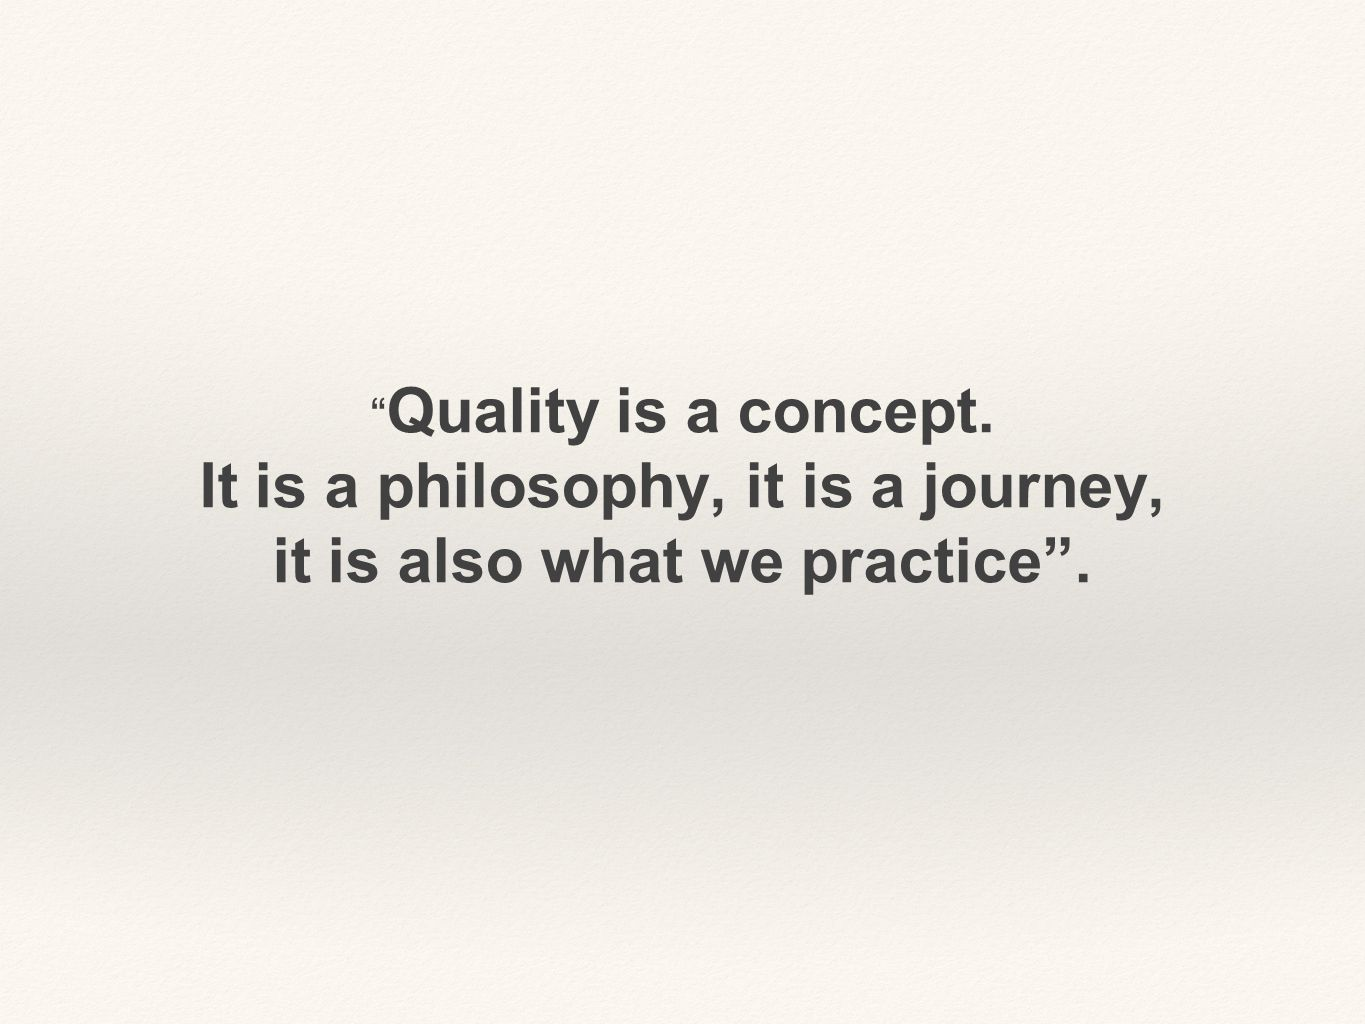 Quality is a concept. It is a philosophy, it is a journey, it is also what we practice .